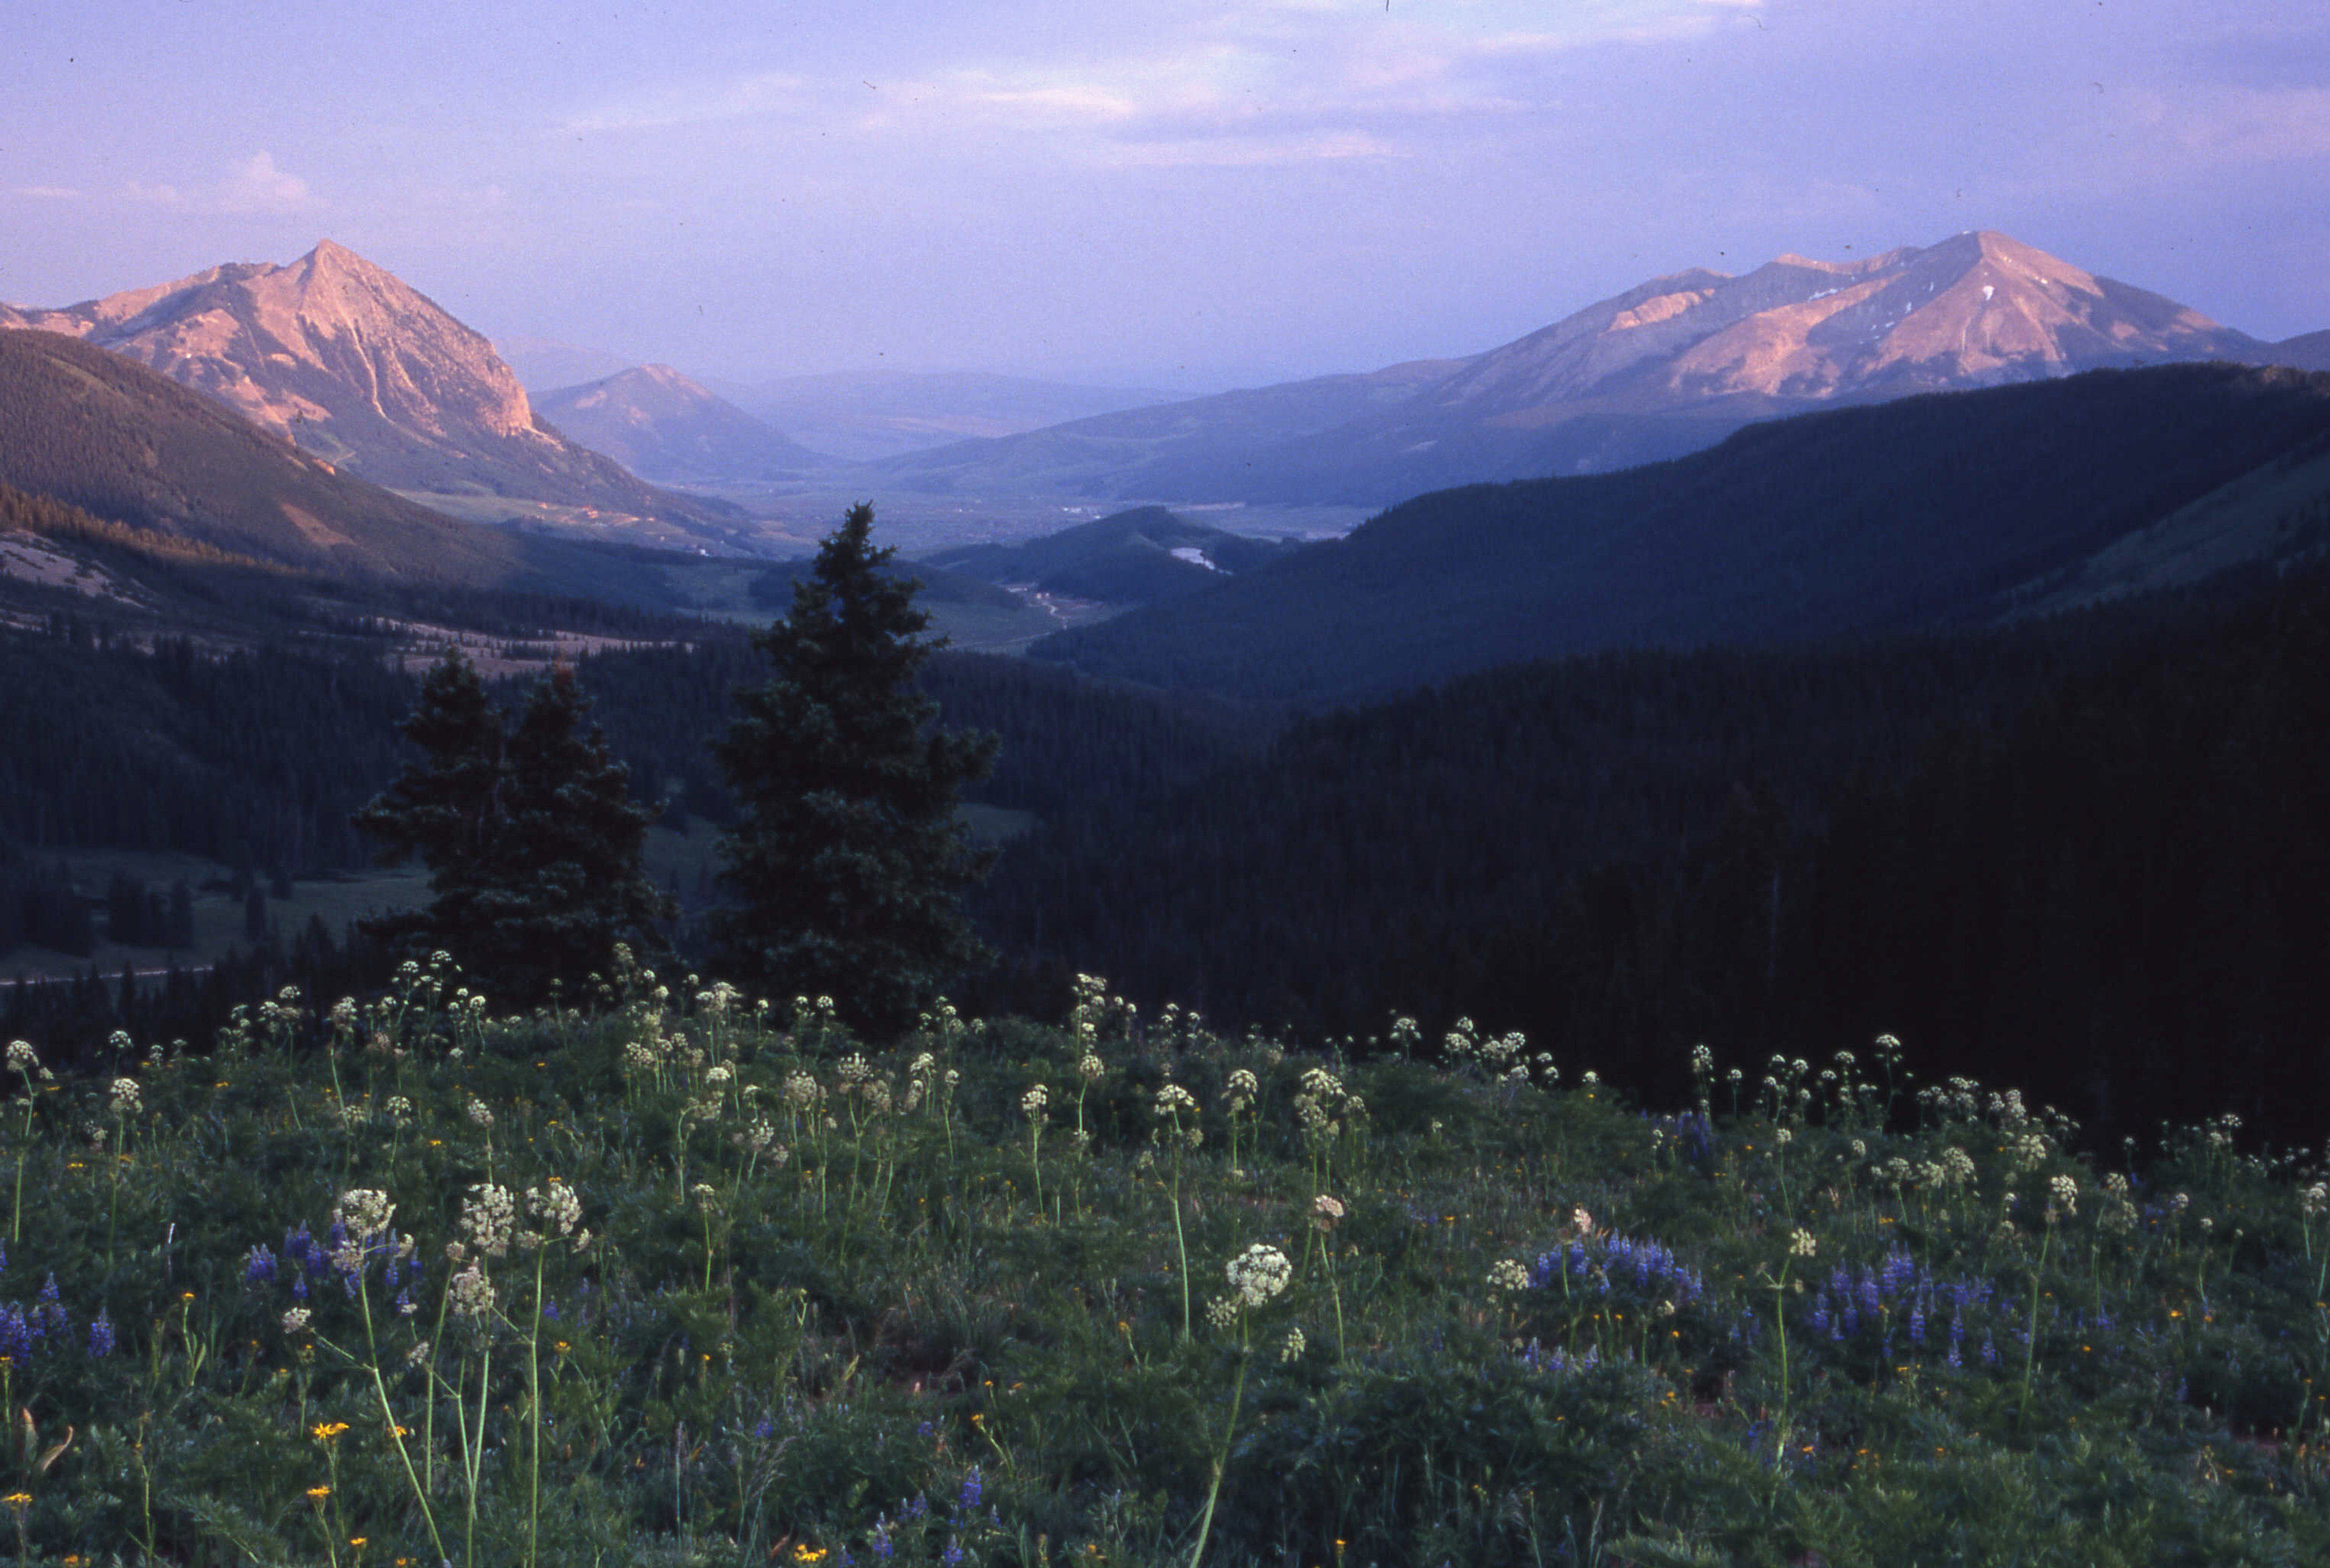 From Anthracite Mesa looking southeast towards Crested Butte